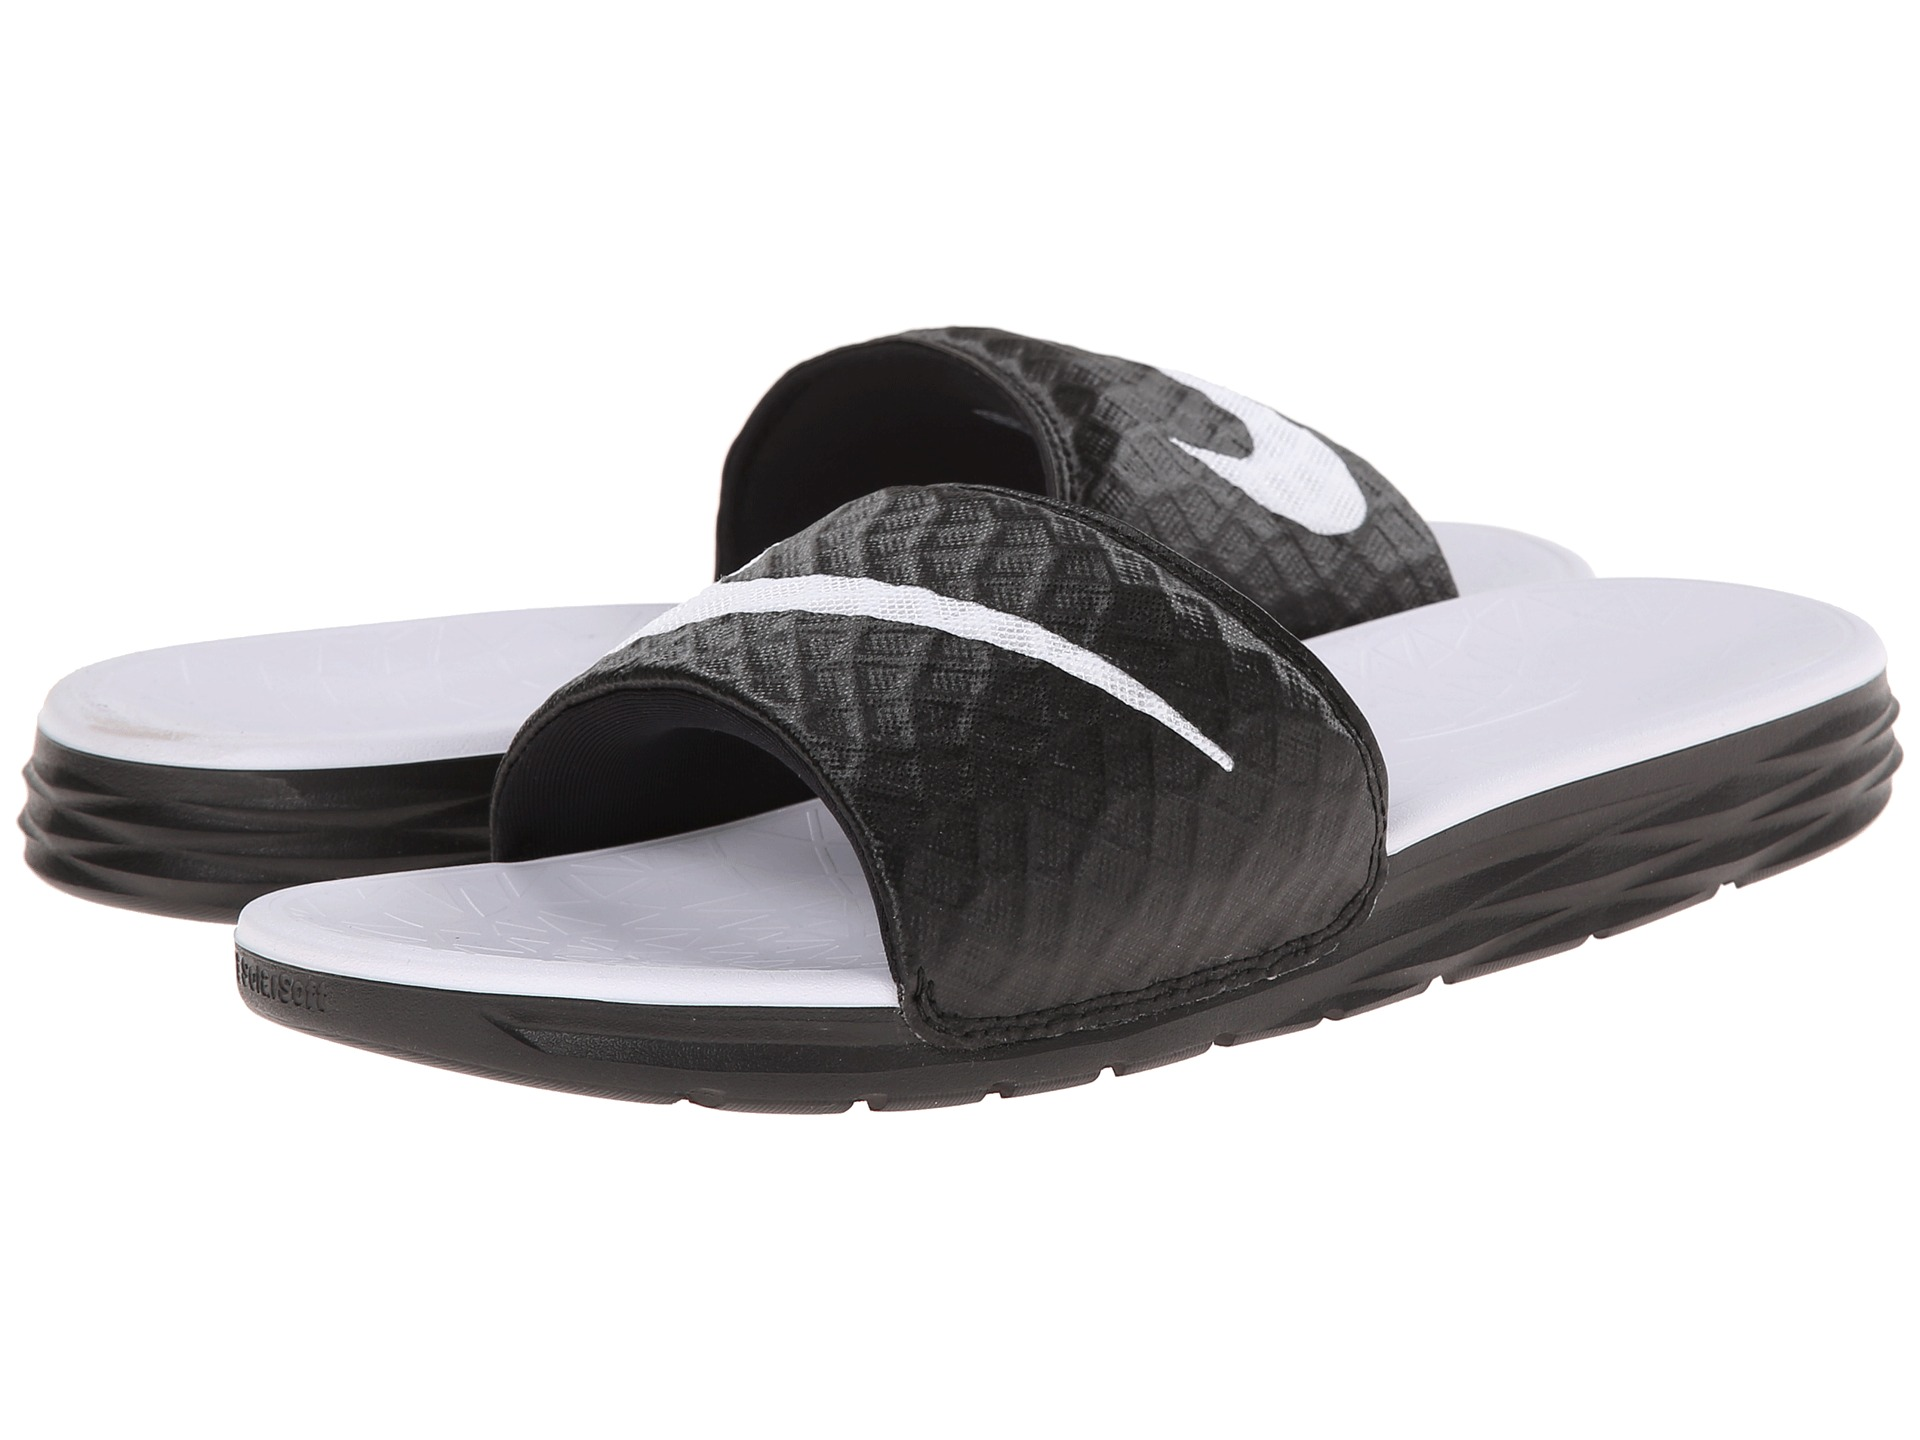 5ede3760e01c67 Nike Benassi Jdi Solarsoft Mens Slide Sandals